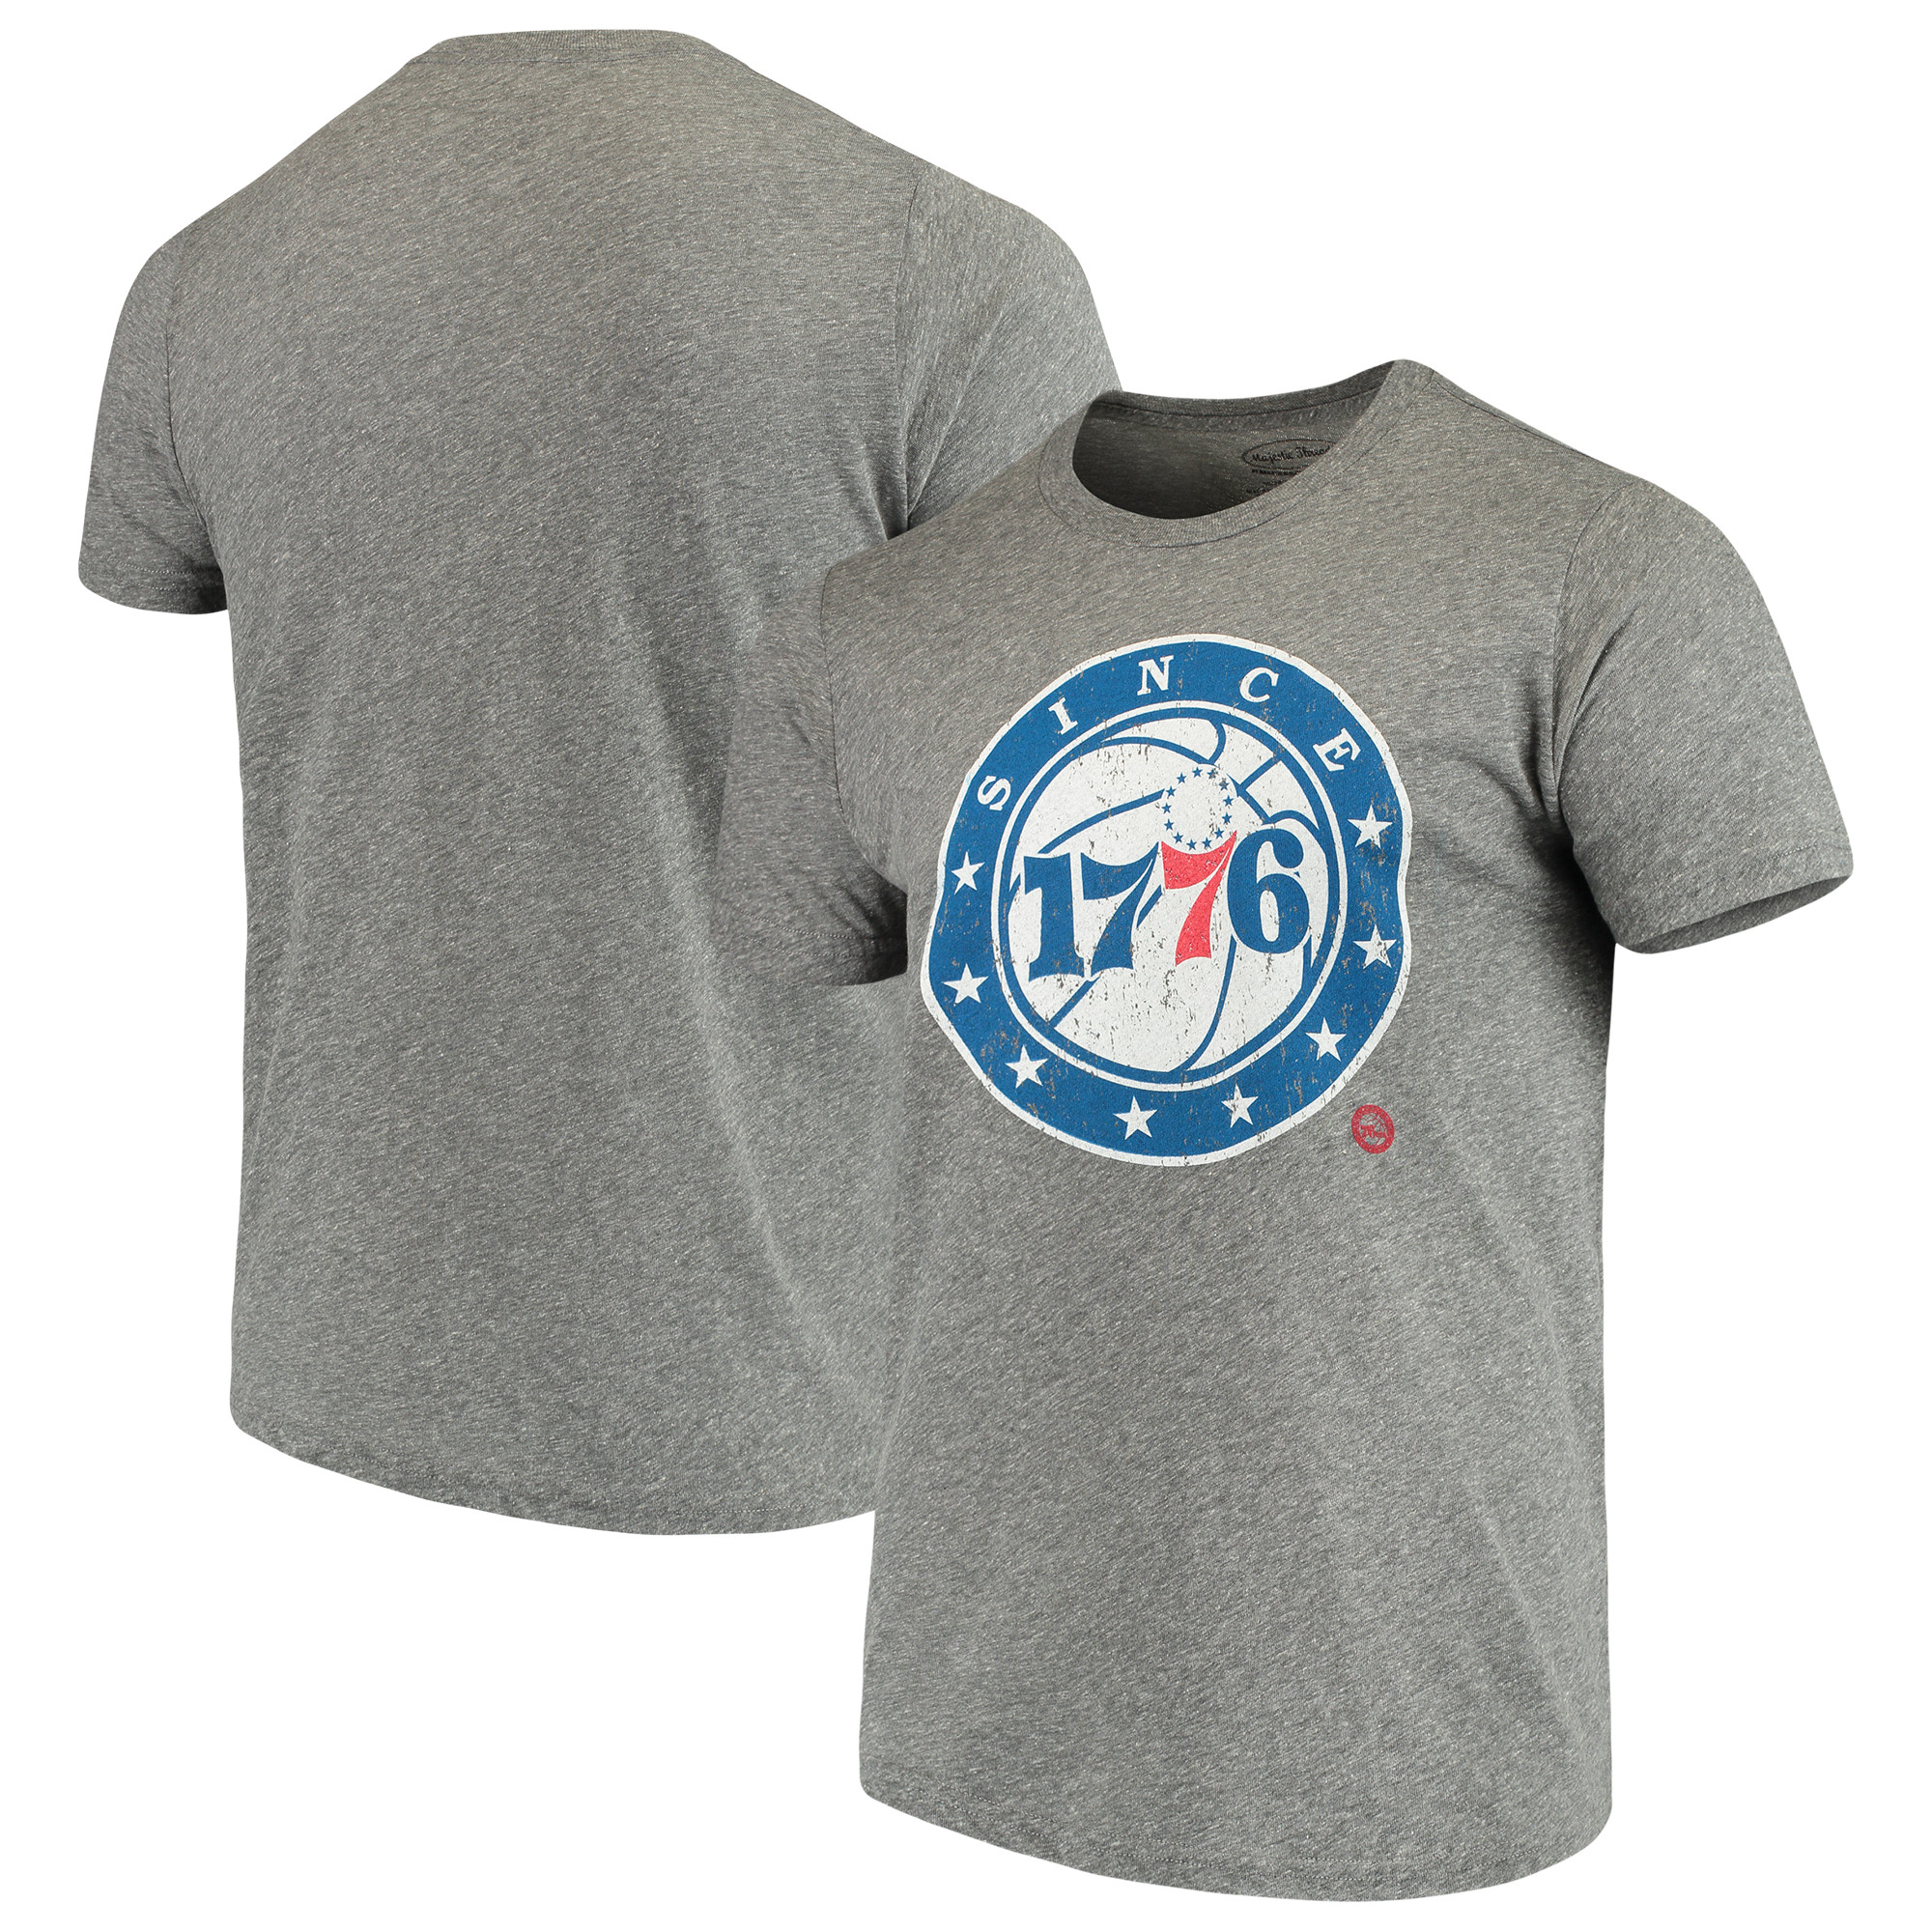 Philadelphia 76ers Majestic Threads Since Tri-Blend T-Shirt - Heathered Gray